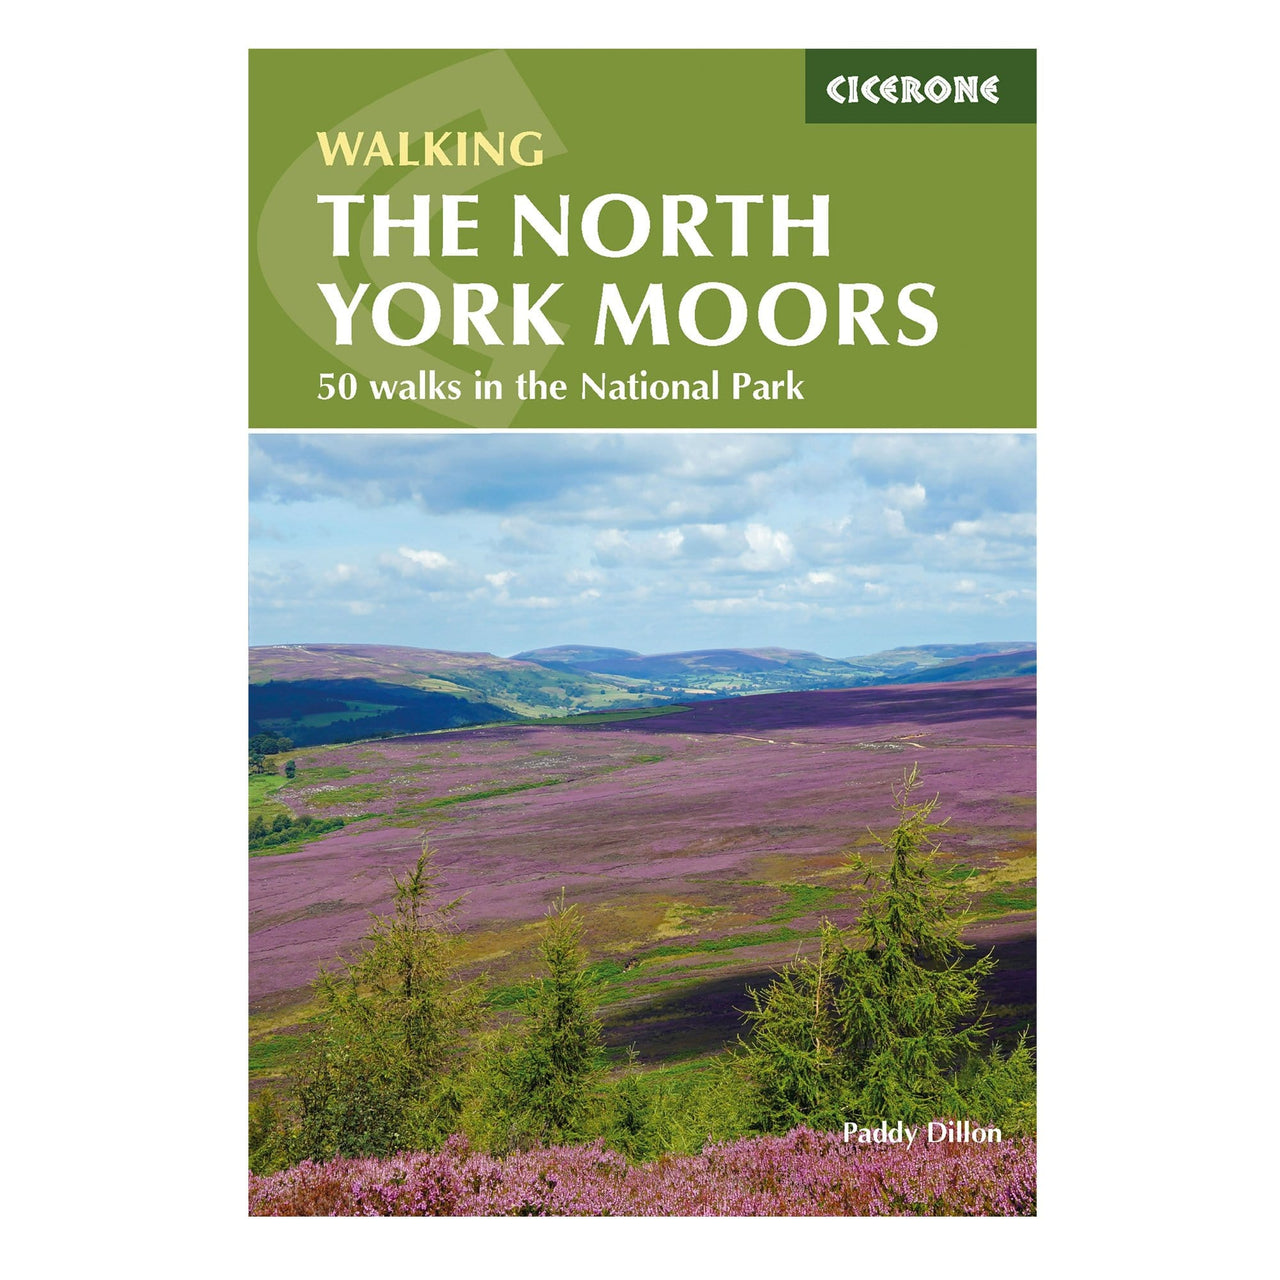 Walking the North York Moors